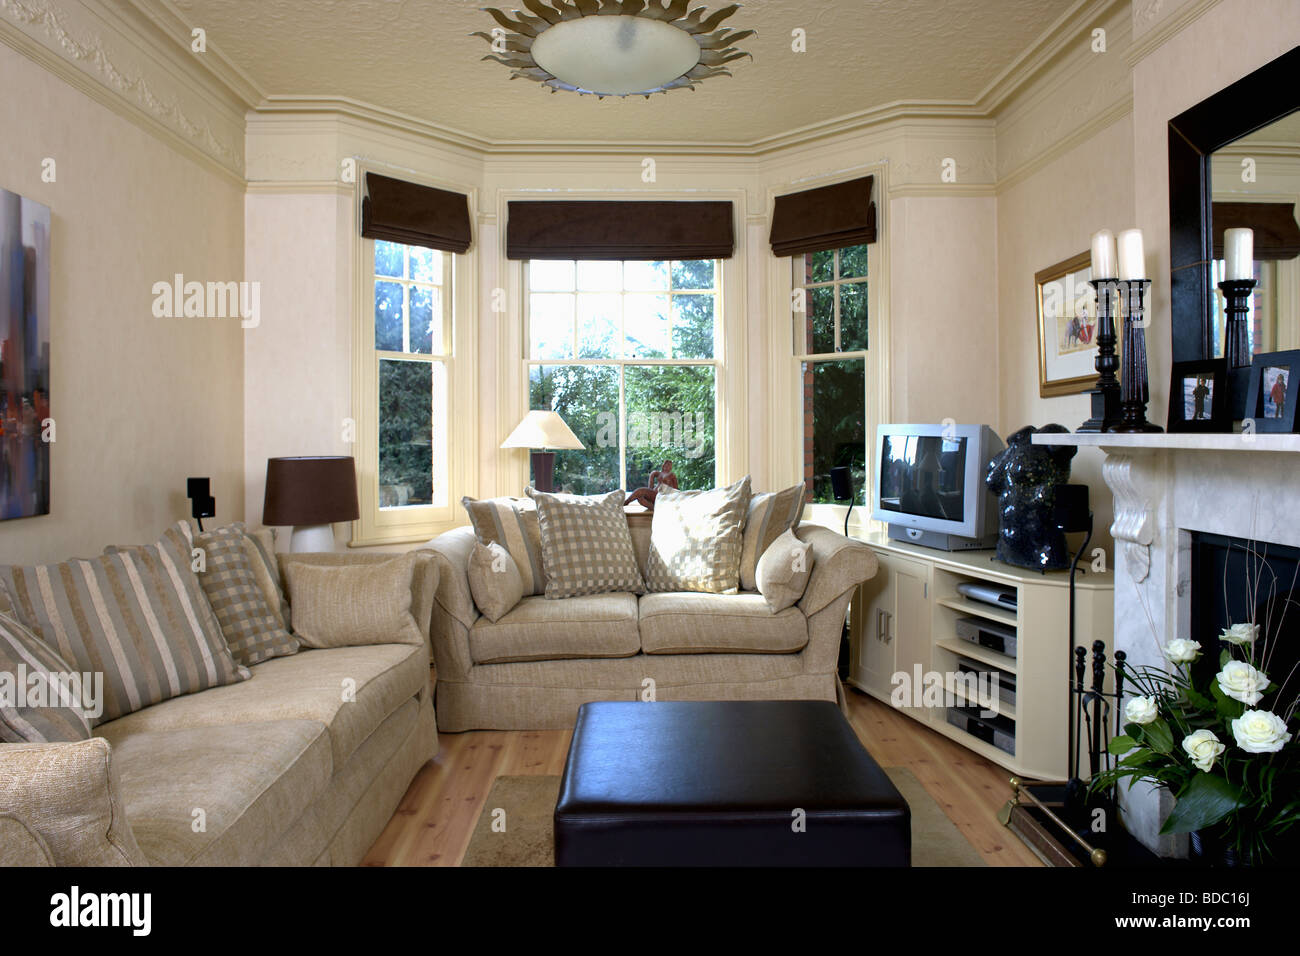 Beige Sofas In Cream Living Room With Black Blinds On Bay Window And  Television On Shelf Unit Beside Fireplace Part 33